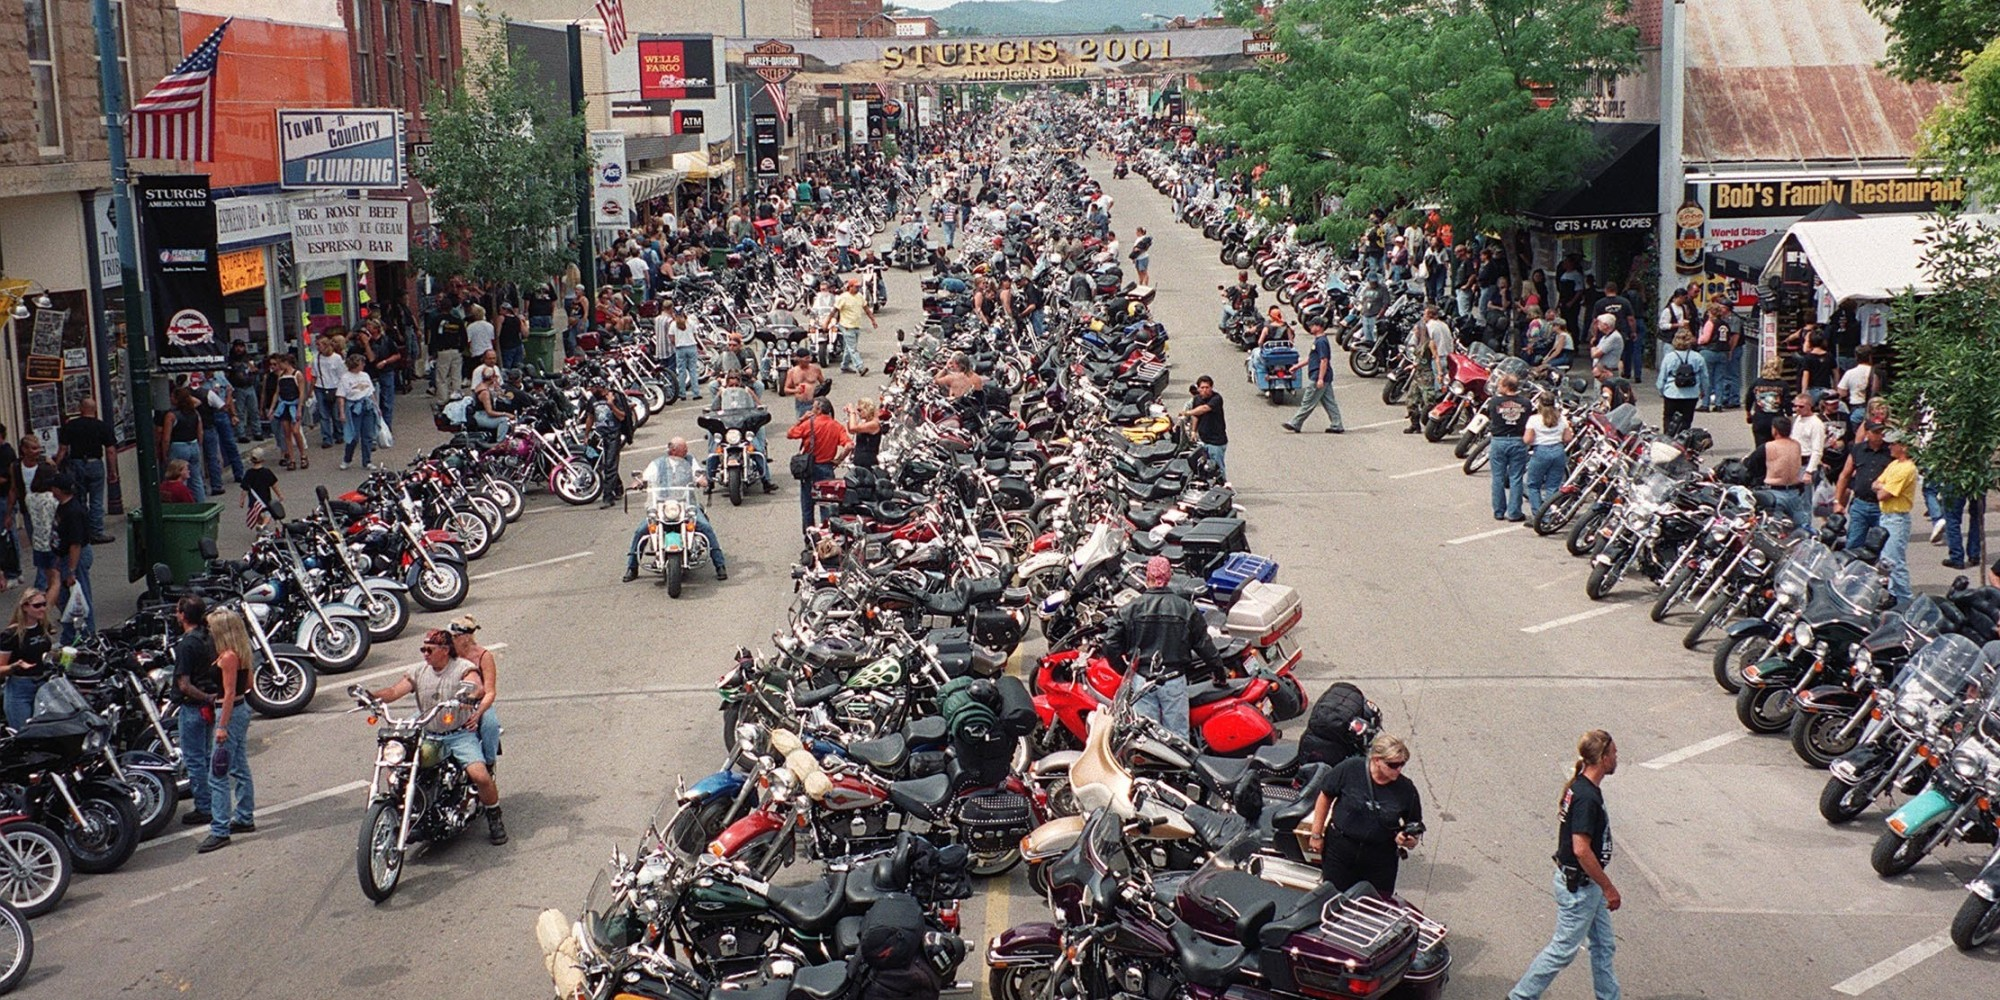 Pictures of sturgis motorcycle rally